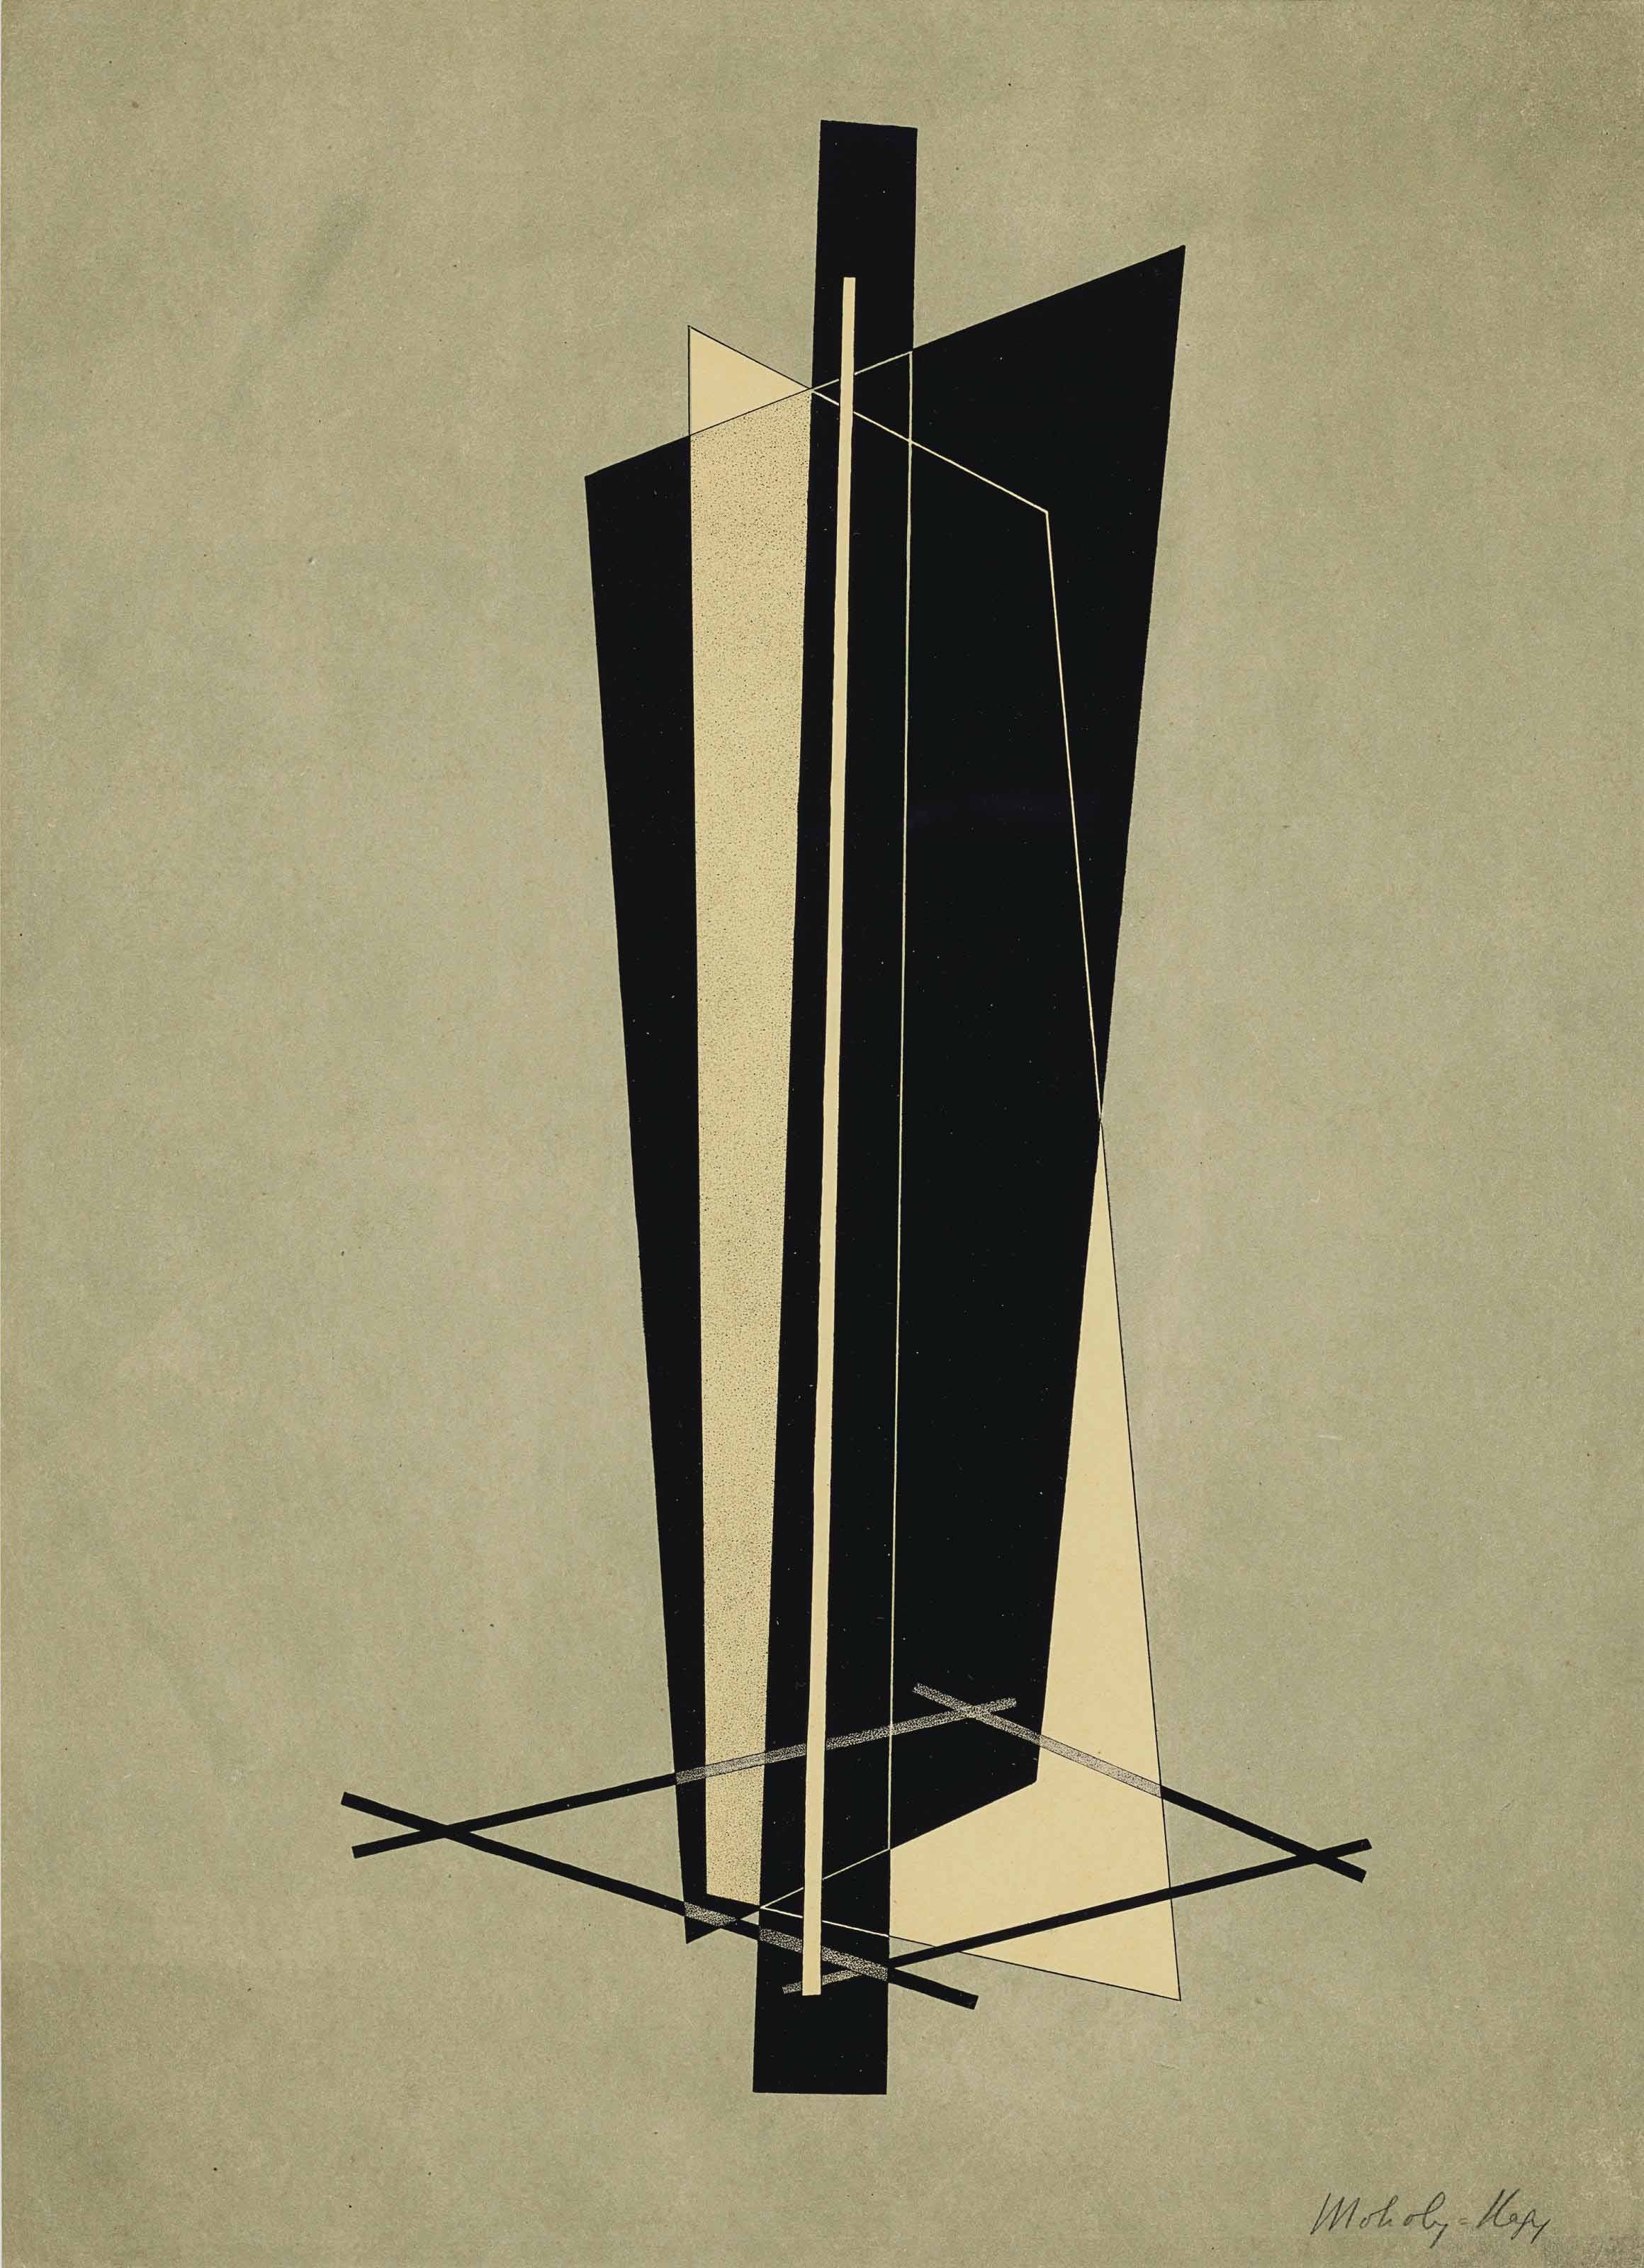 LASZLO MOHOLY-NAGY (1895-1946) Konstrucktion VI, from 6. Kestner-Mappe 6 Konstruktionen lithograph in colors, 1923